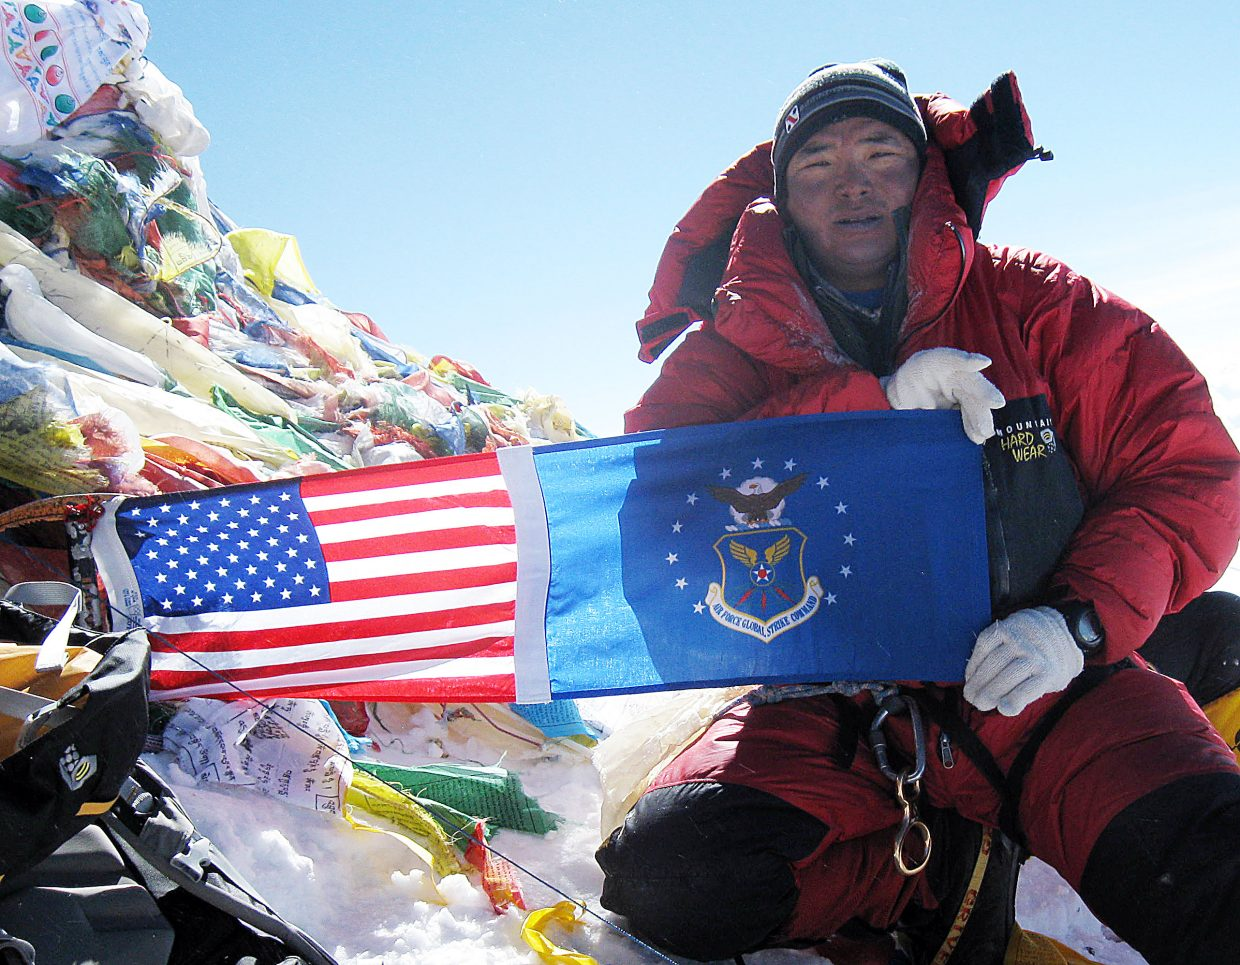 Sherpa Chhiring Dorje kneels on the summit of Mount Everest. He's reached that point 12 times in his climbing career, and hopes to do so again this spring.